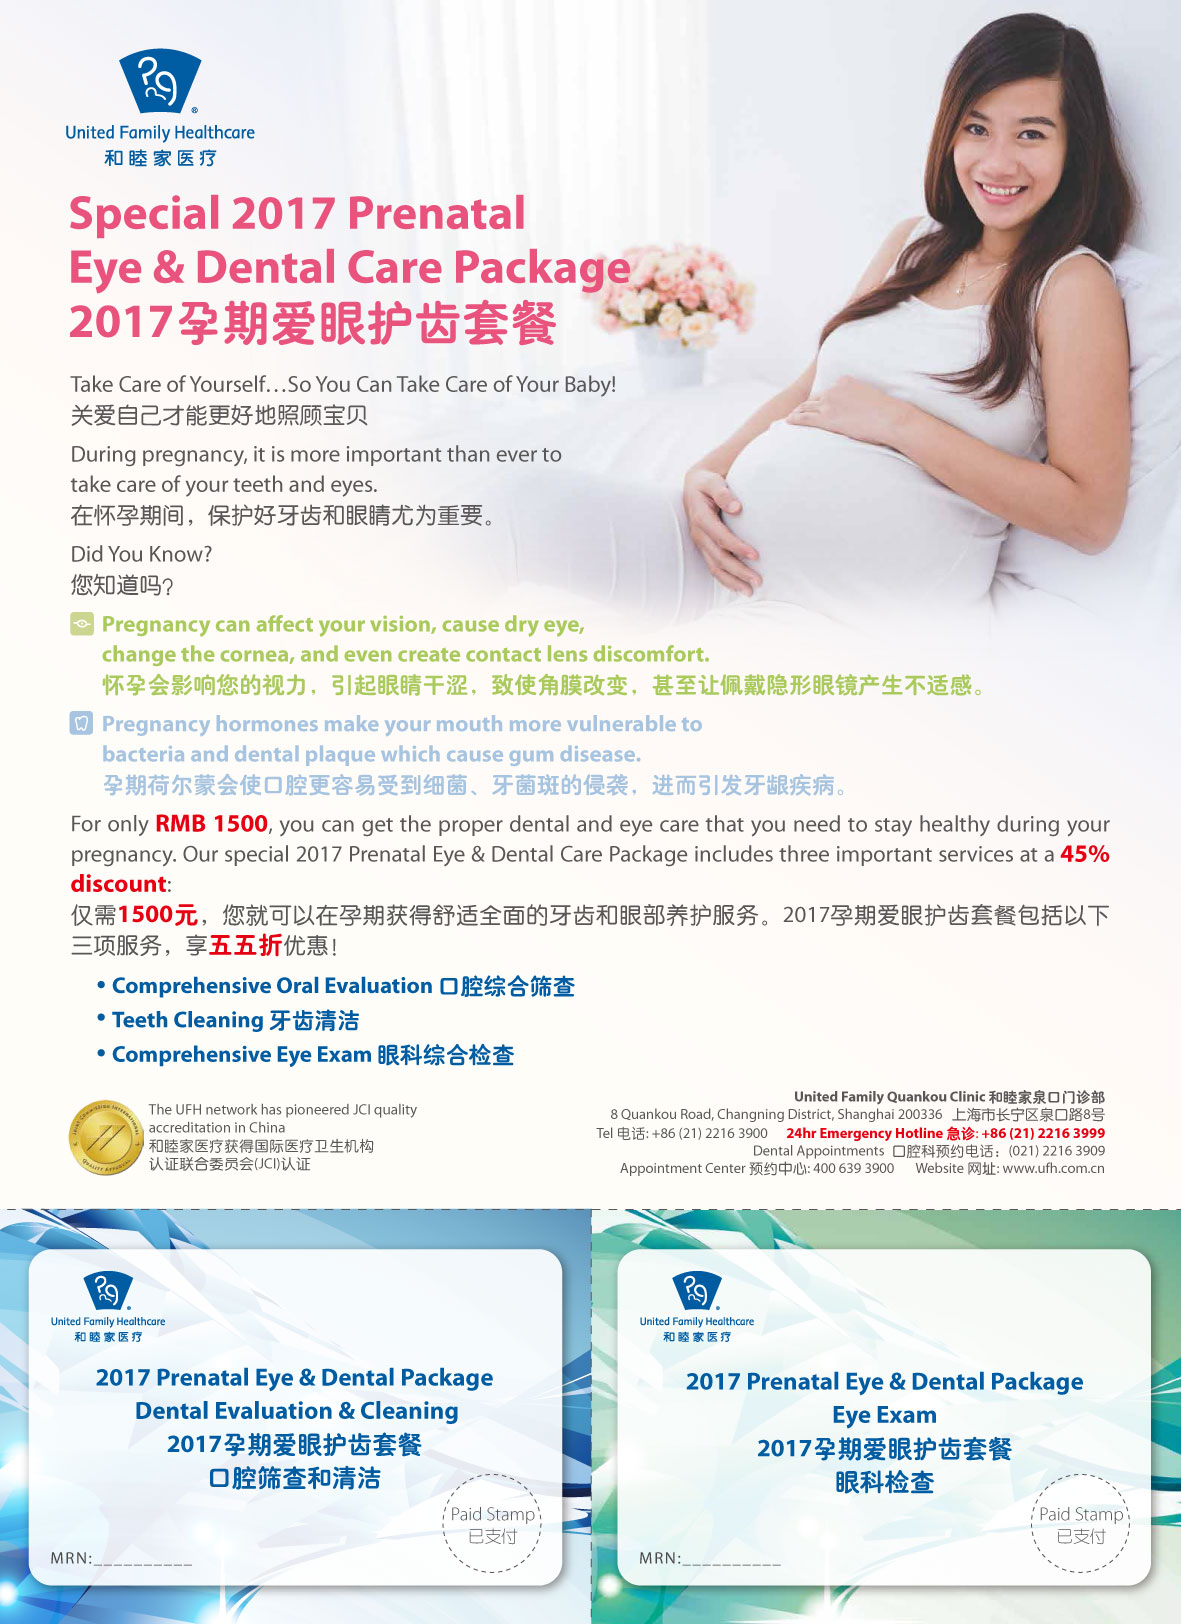 shu_-prenatal-eye-dental-care-package-flyer_20170401-1